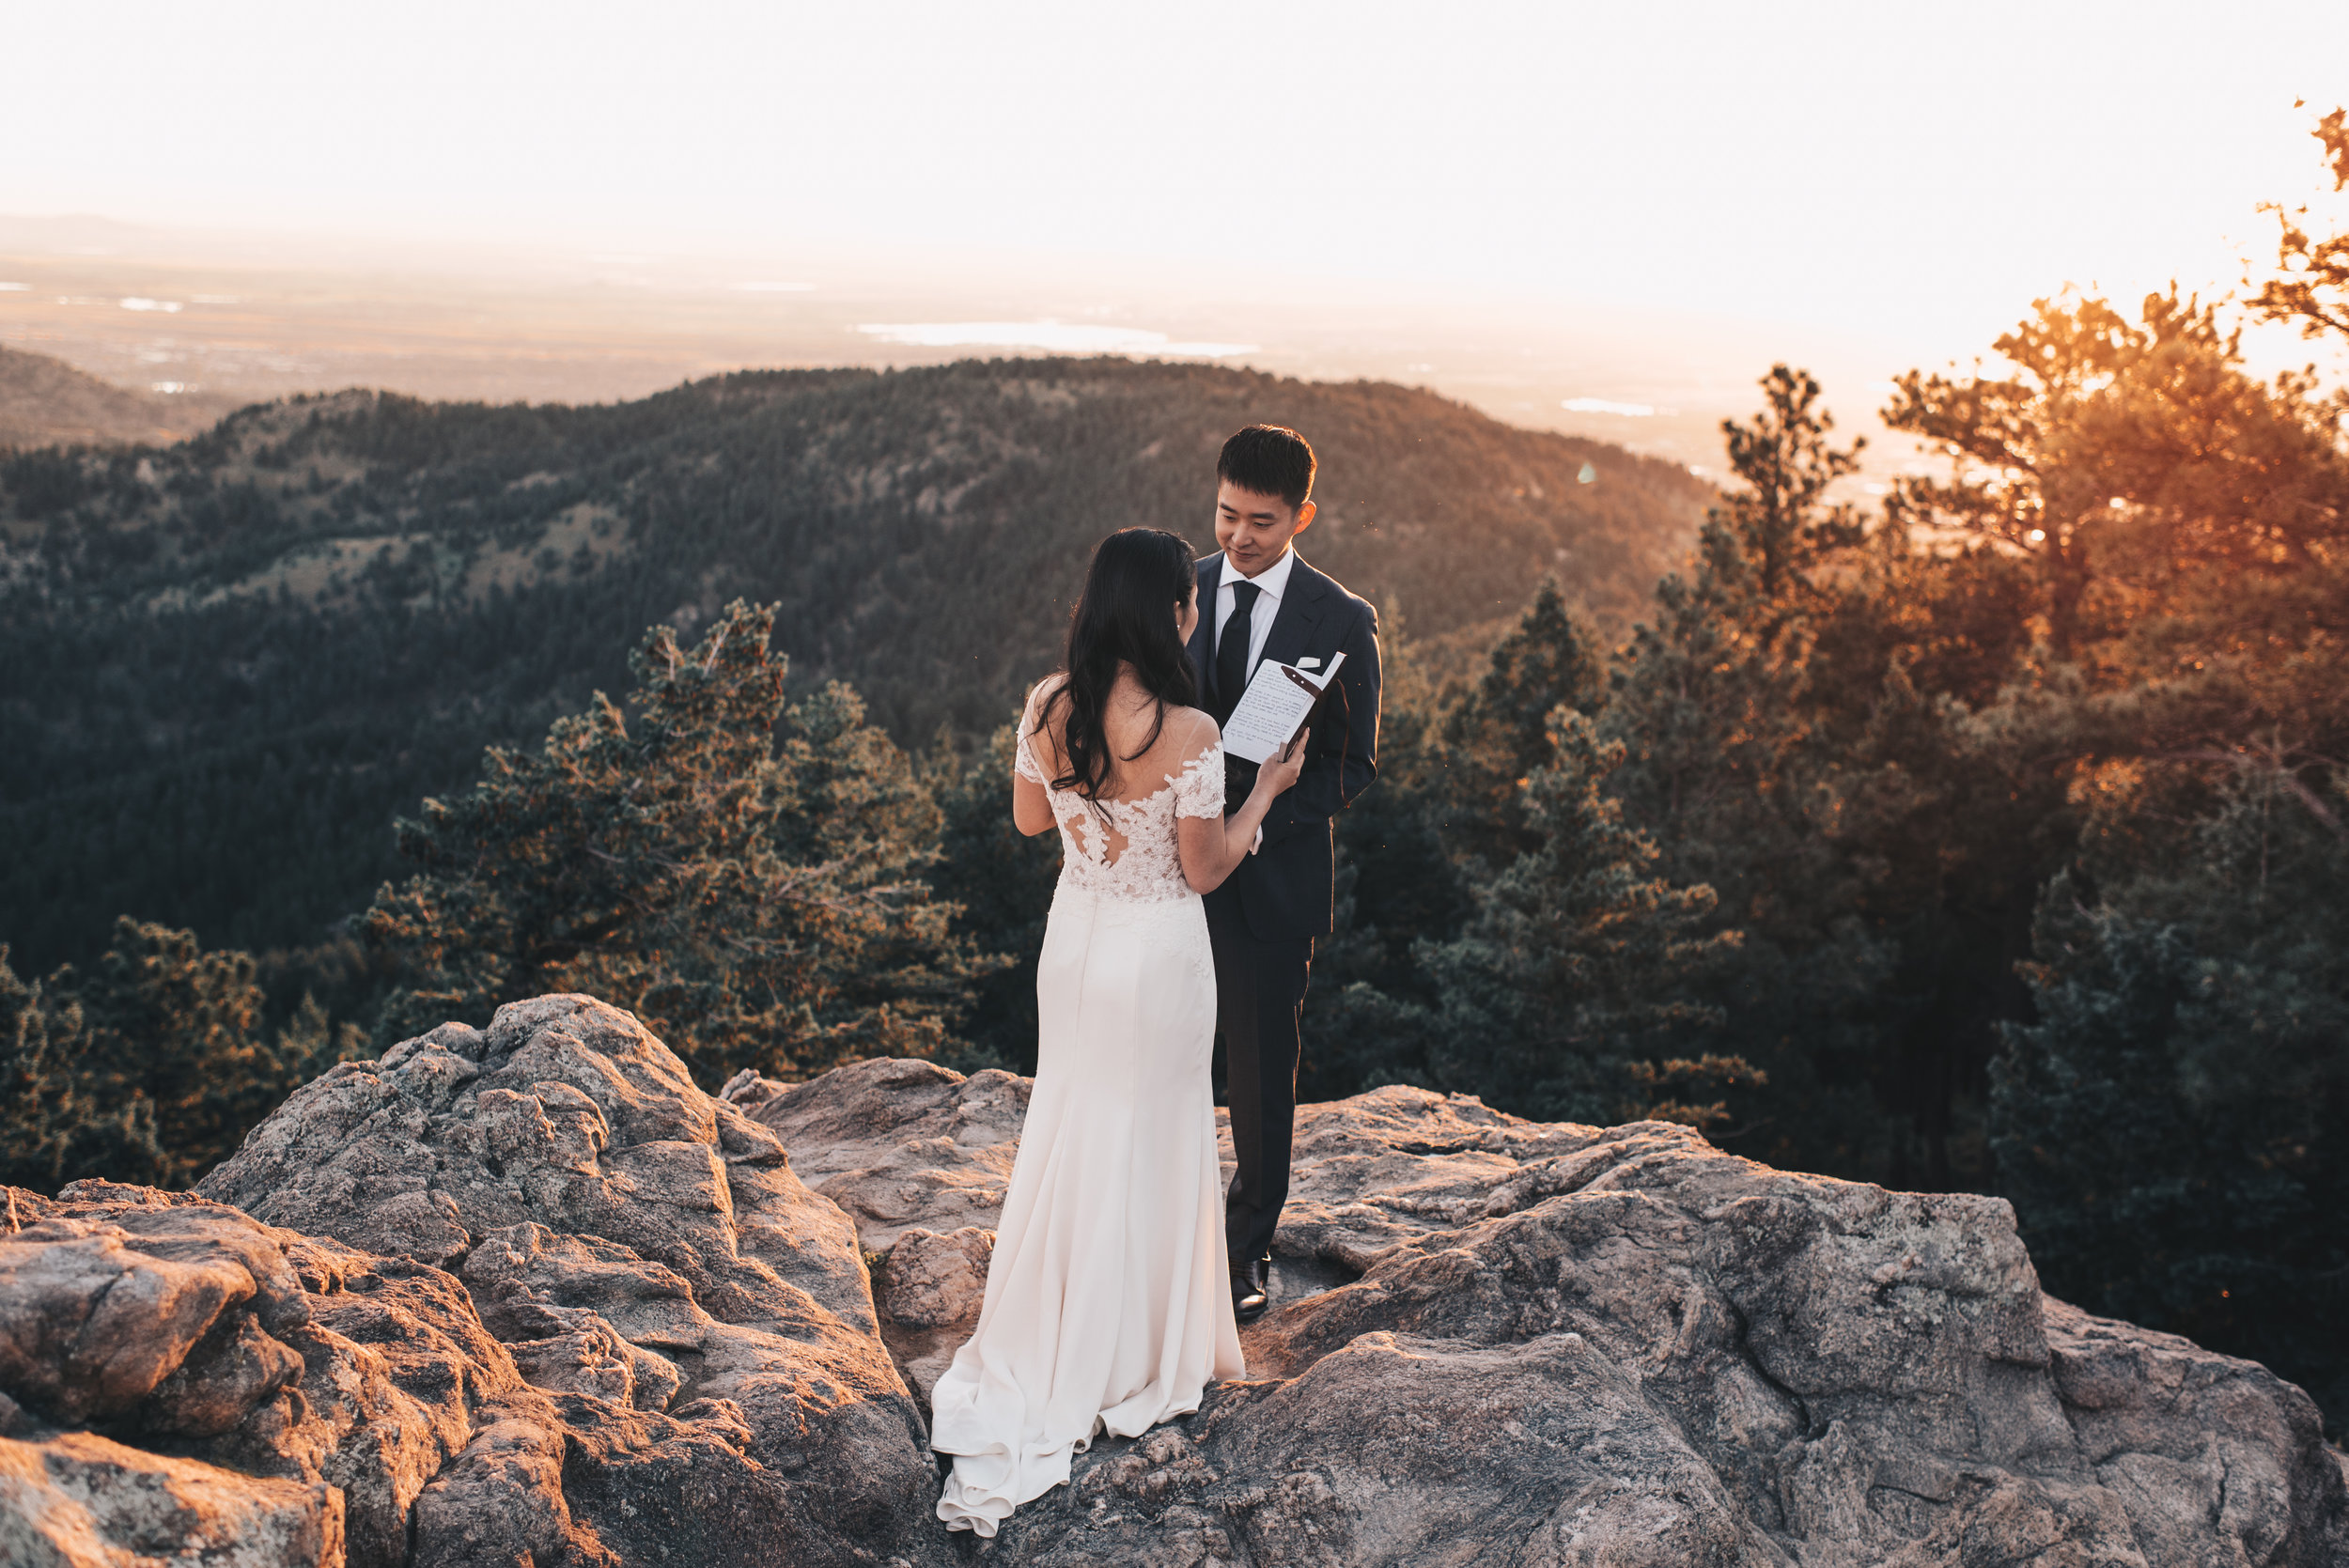 Rocky Mountain National Park Elopement, Rocky Mountain Elopement, Intimate Mountain Elopement, National Park Elopement, Intimate Colorado Elopement, Colorado Elopement Photographer, Dreamy Elopement